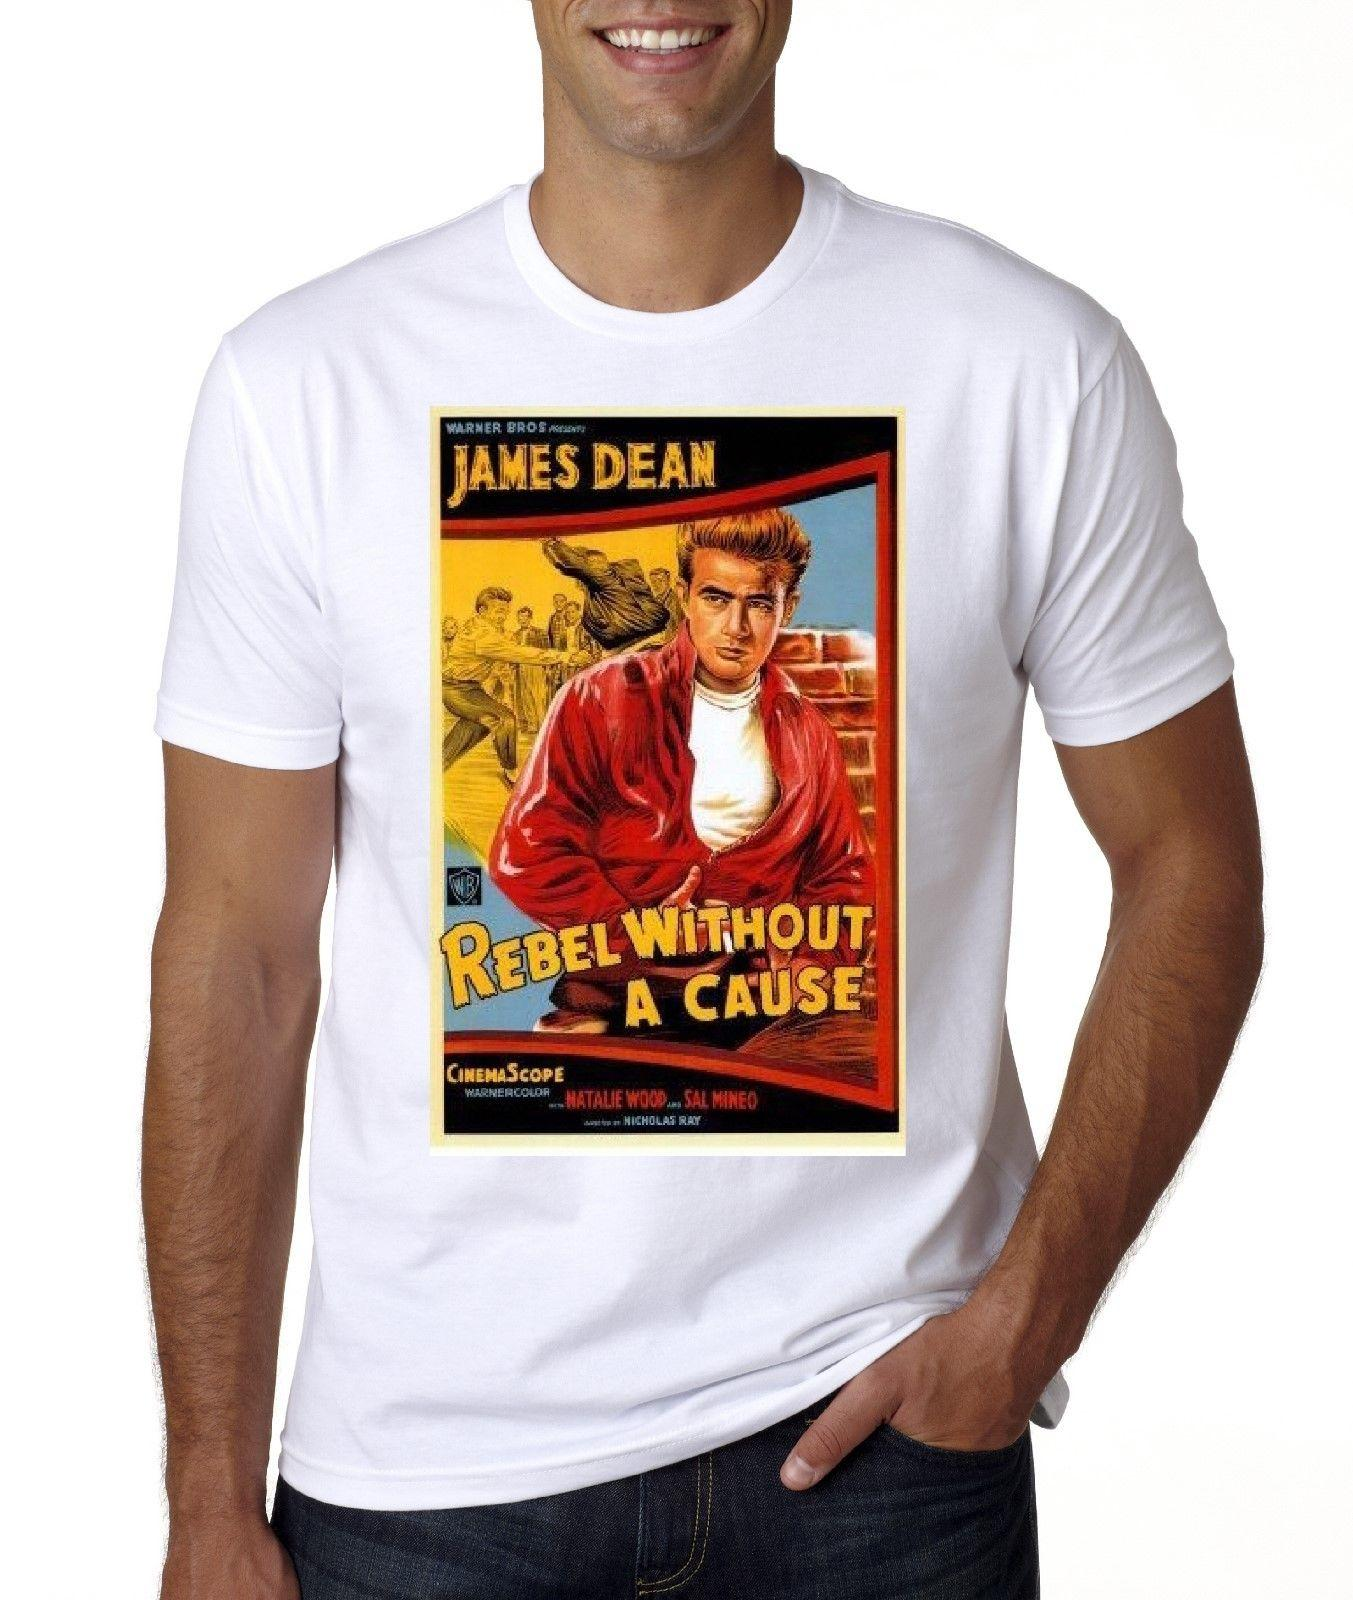 ca72bc8a1 NEW JAMES DEAN REBEL WITHOUT A CAUSE T SHIRT Funny Cool Shirts Be Awesome T  Shirt From Joyfulandhappy57